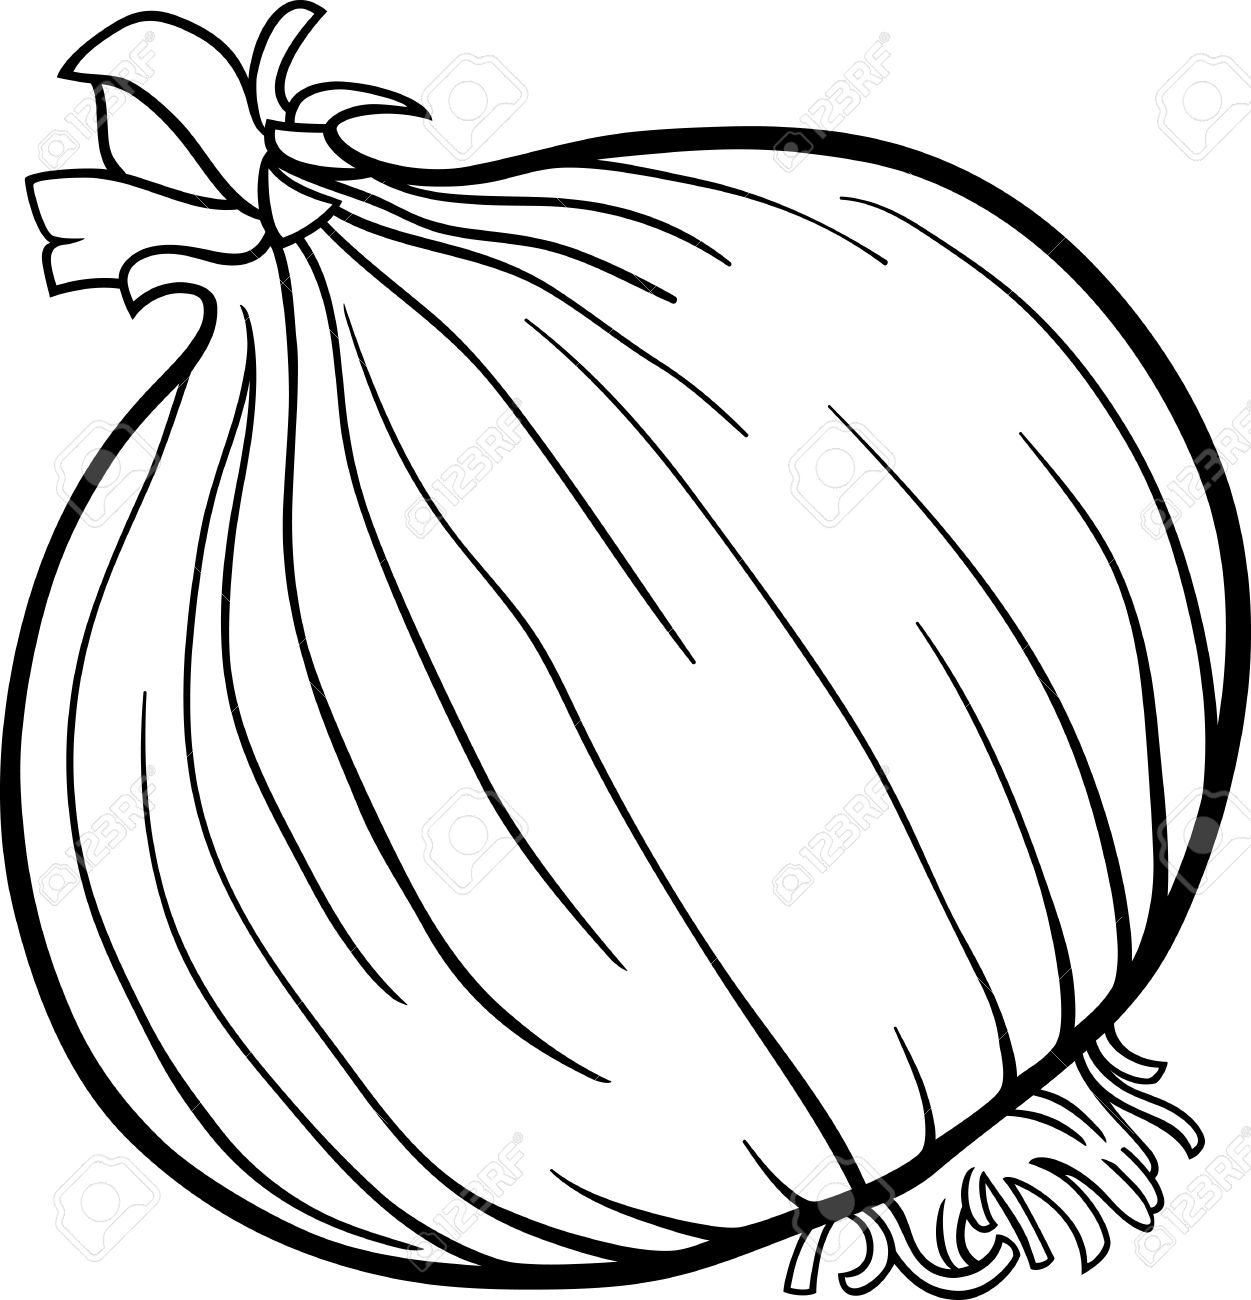 Black And White Cartoon Illustration Of Onion Root Vegetable ...